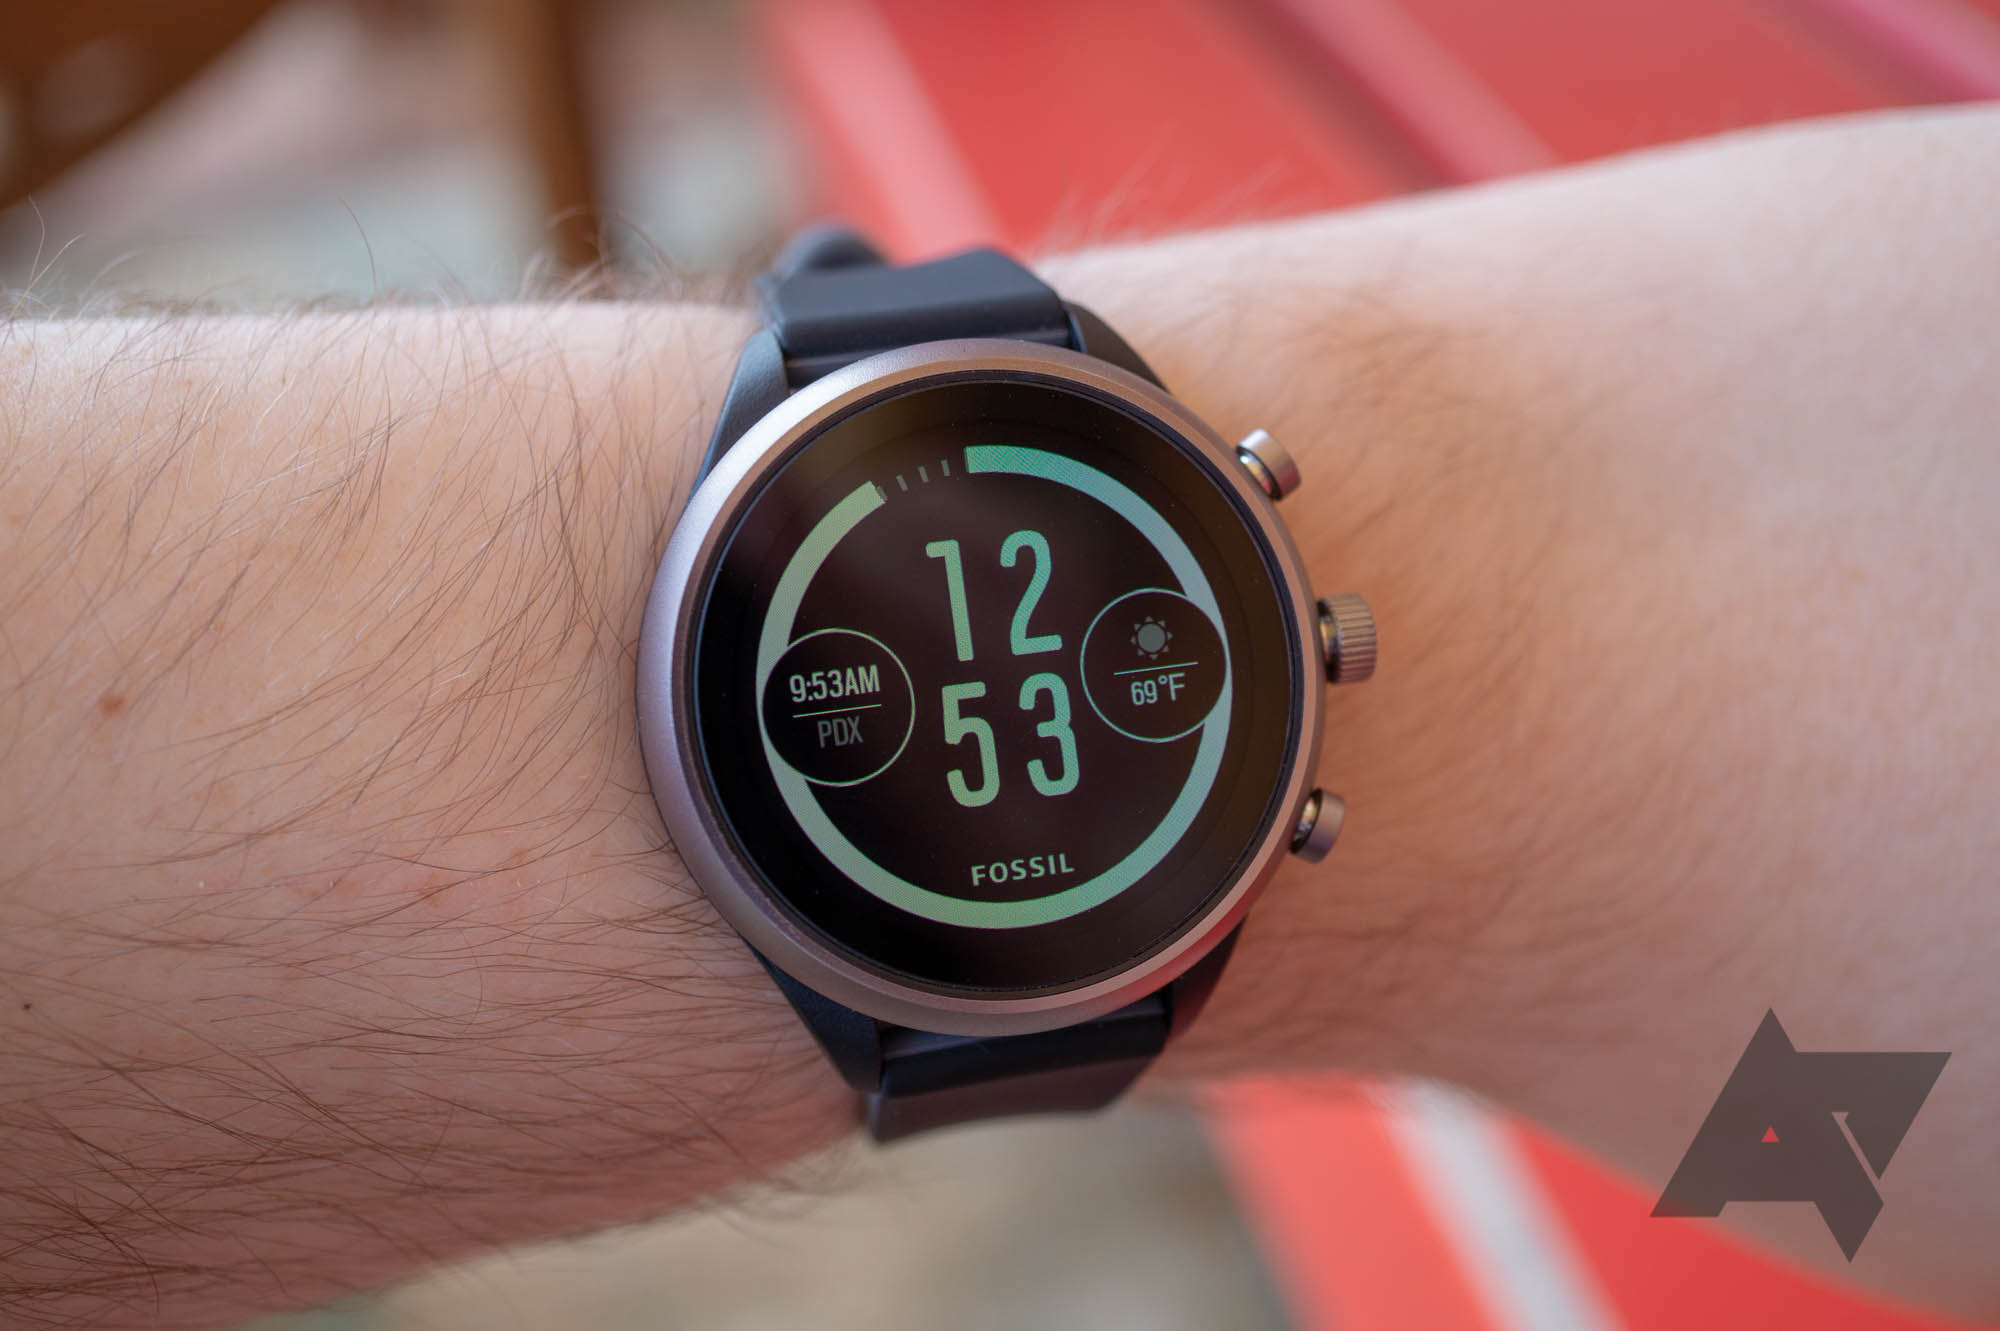 The Fossil Sport smartwatch is down to $74 at Amazon ($26 off)